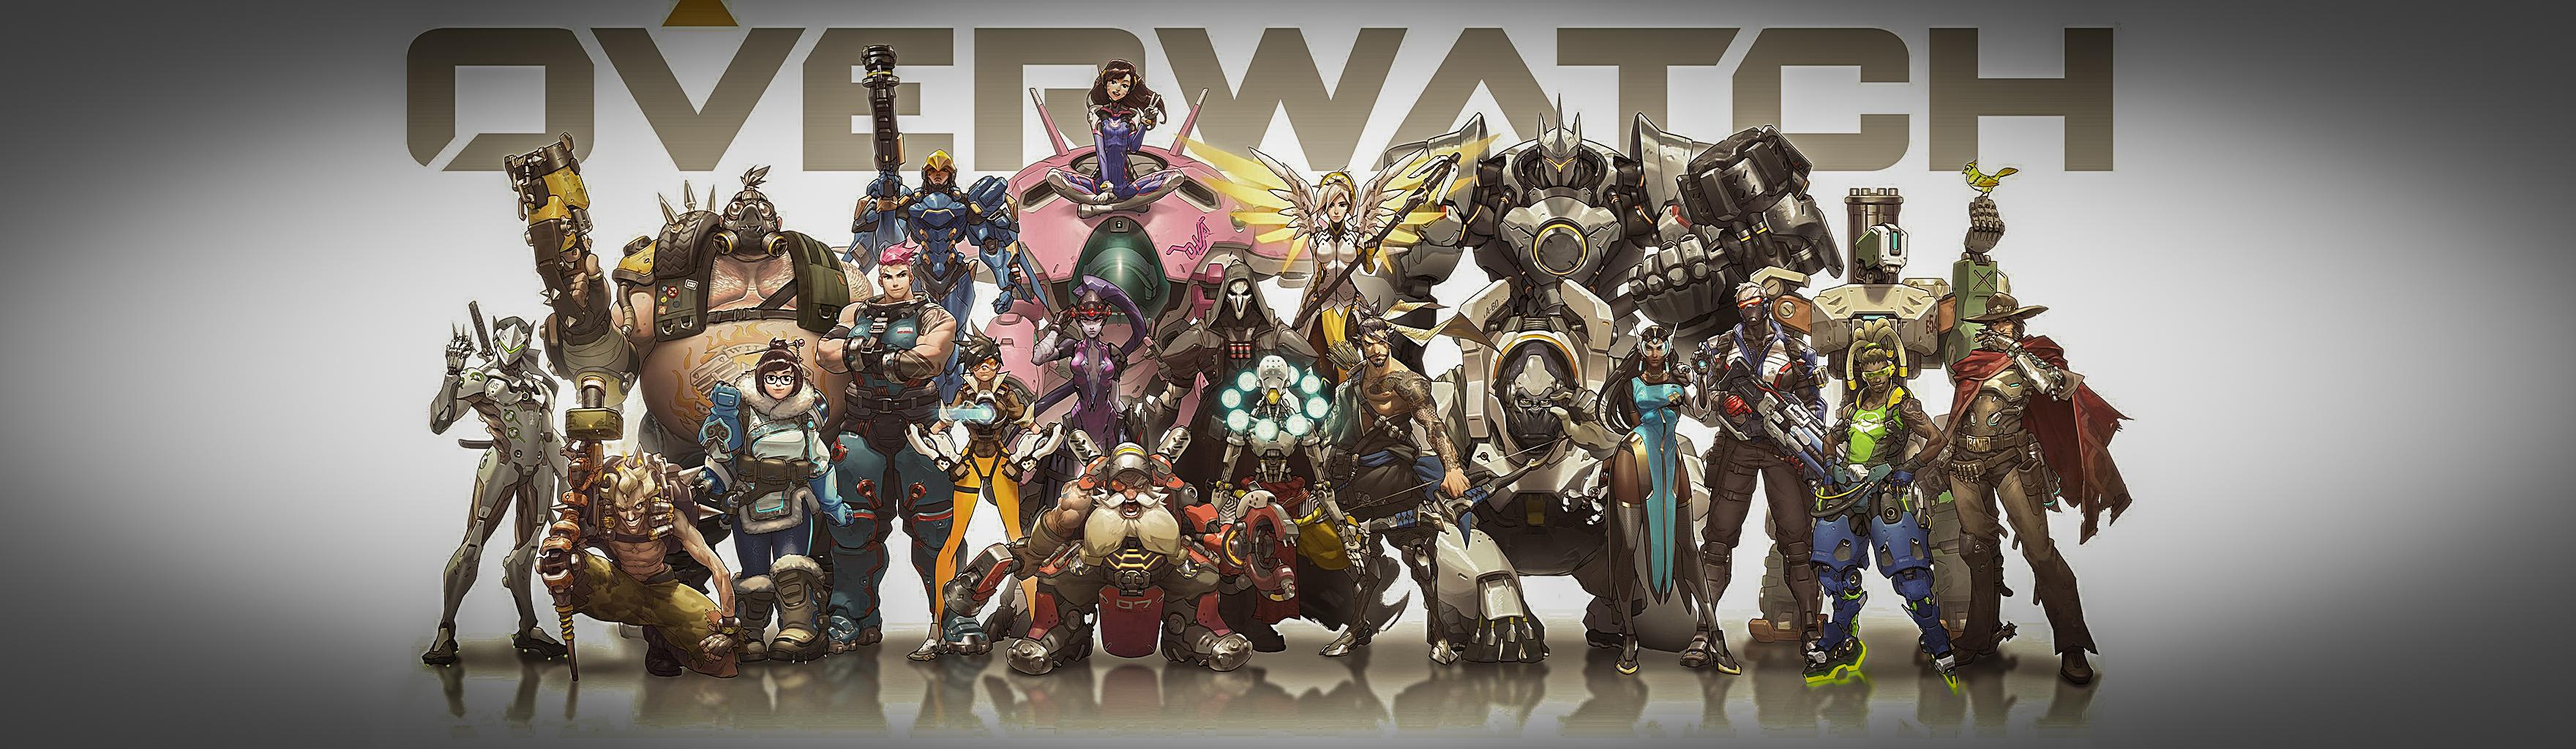 L Double Monitor Girl Wallpapers Overwatch Fond D 233 Cran And Arri 232 Re Plan 3520x1024 Id